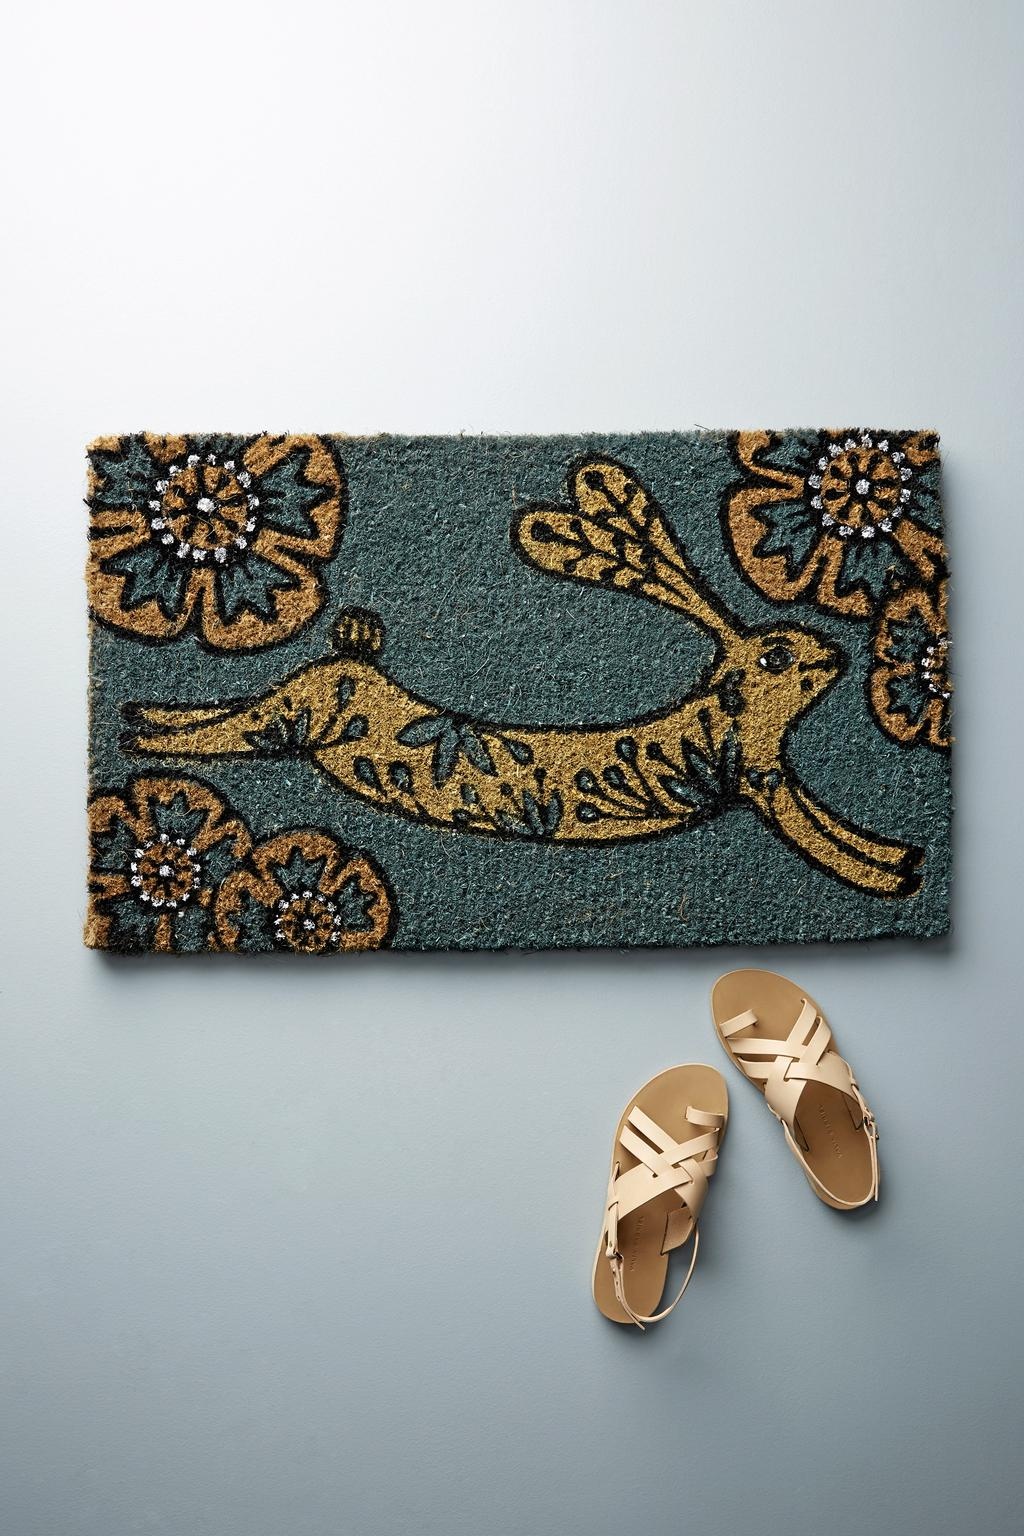 Paillasson lapin, 42$ chez Anthropologie